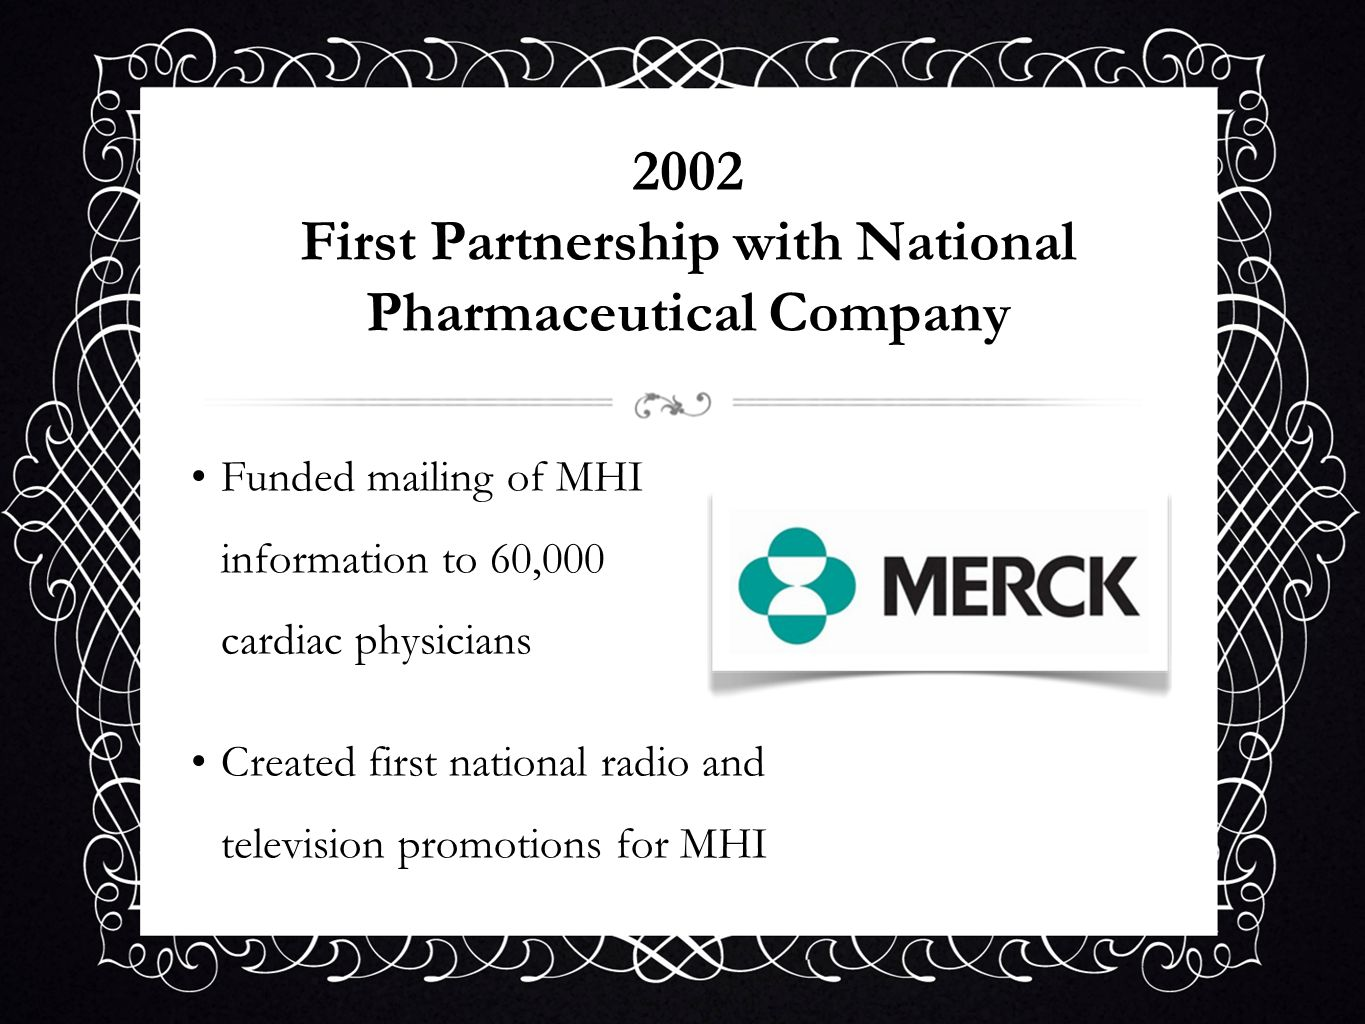 2002 First Partnership with National Pharmaceutical Company